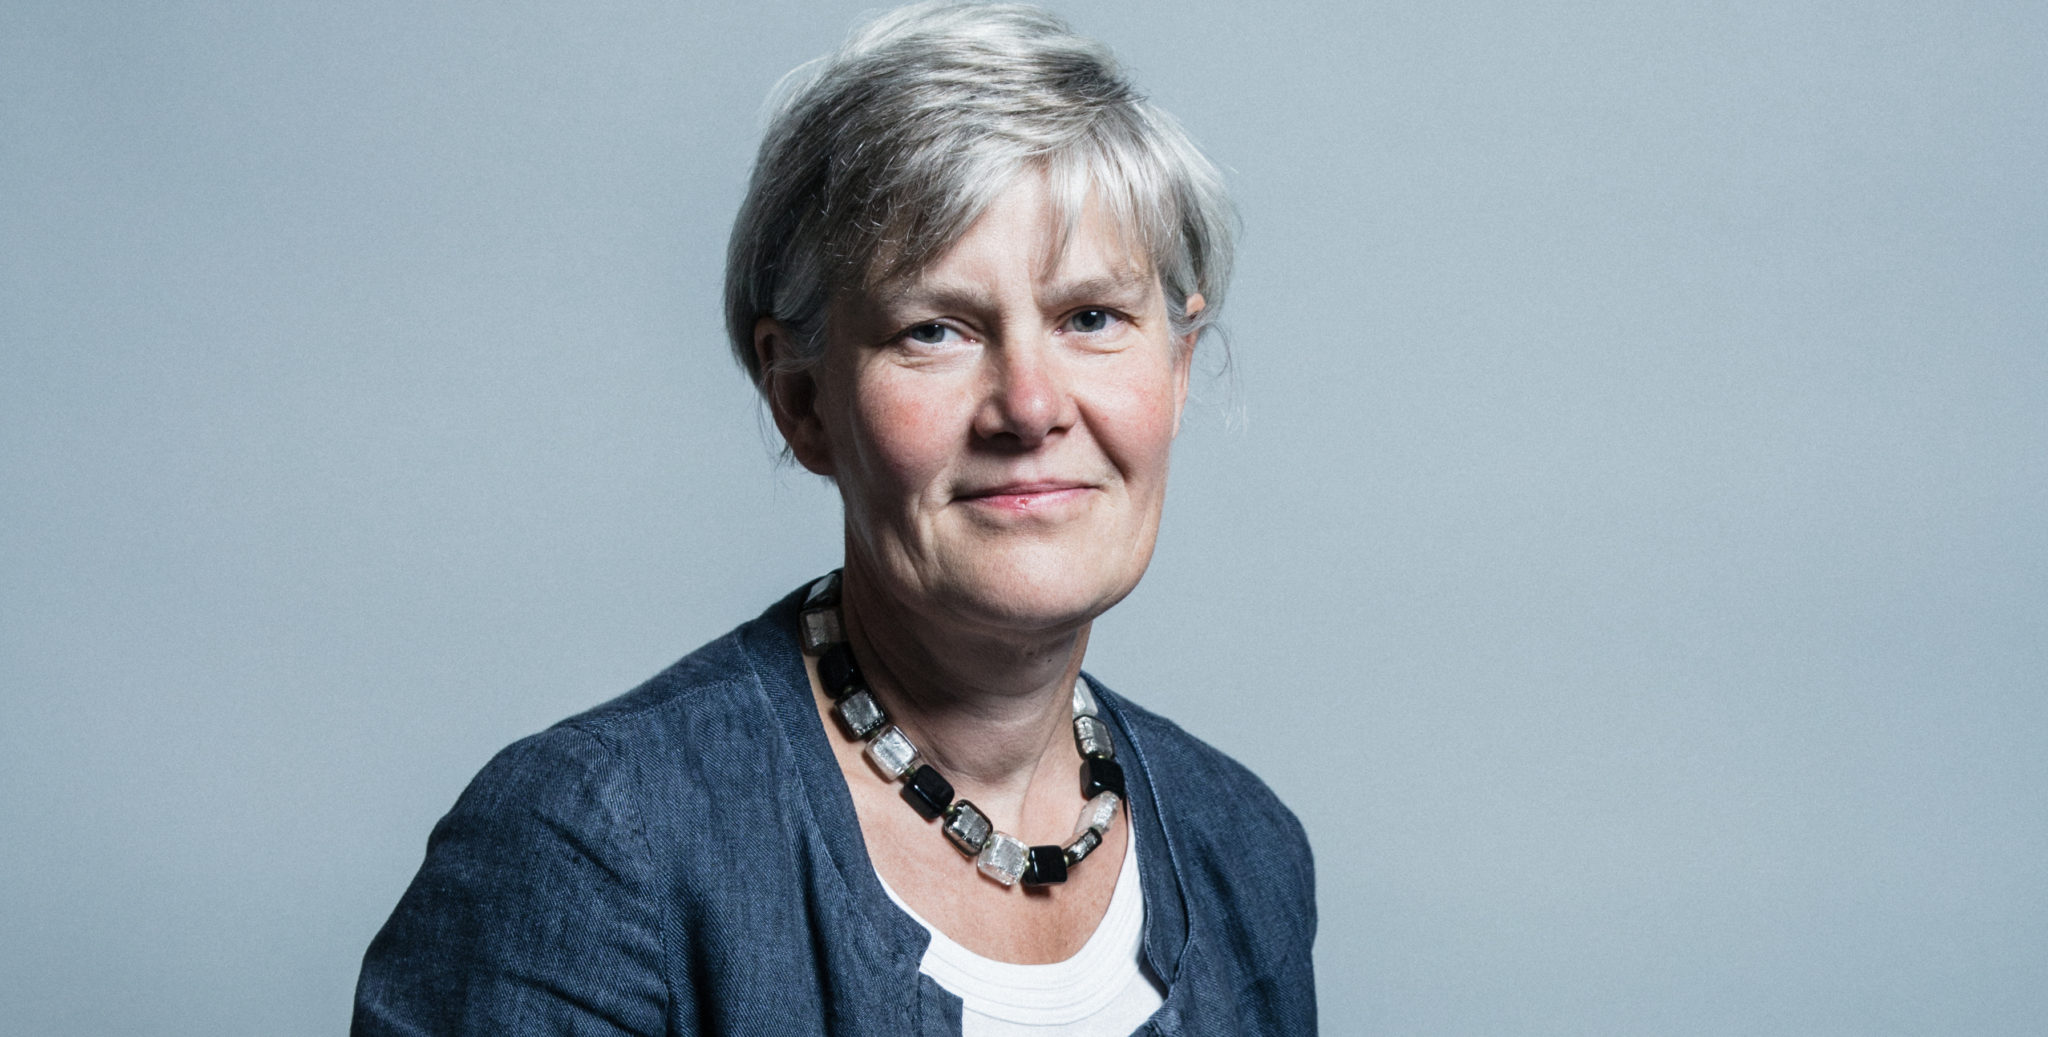 New chair of OfS must resign the Conservative whip, say Labour